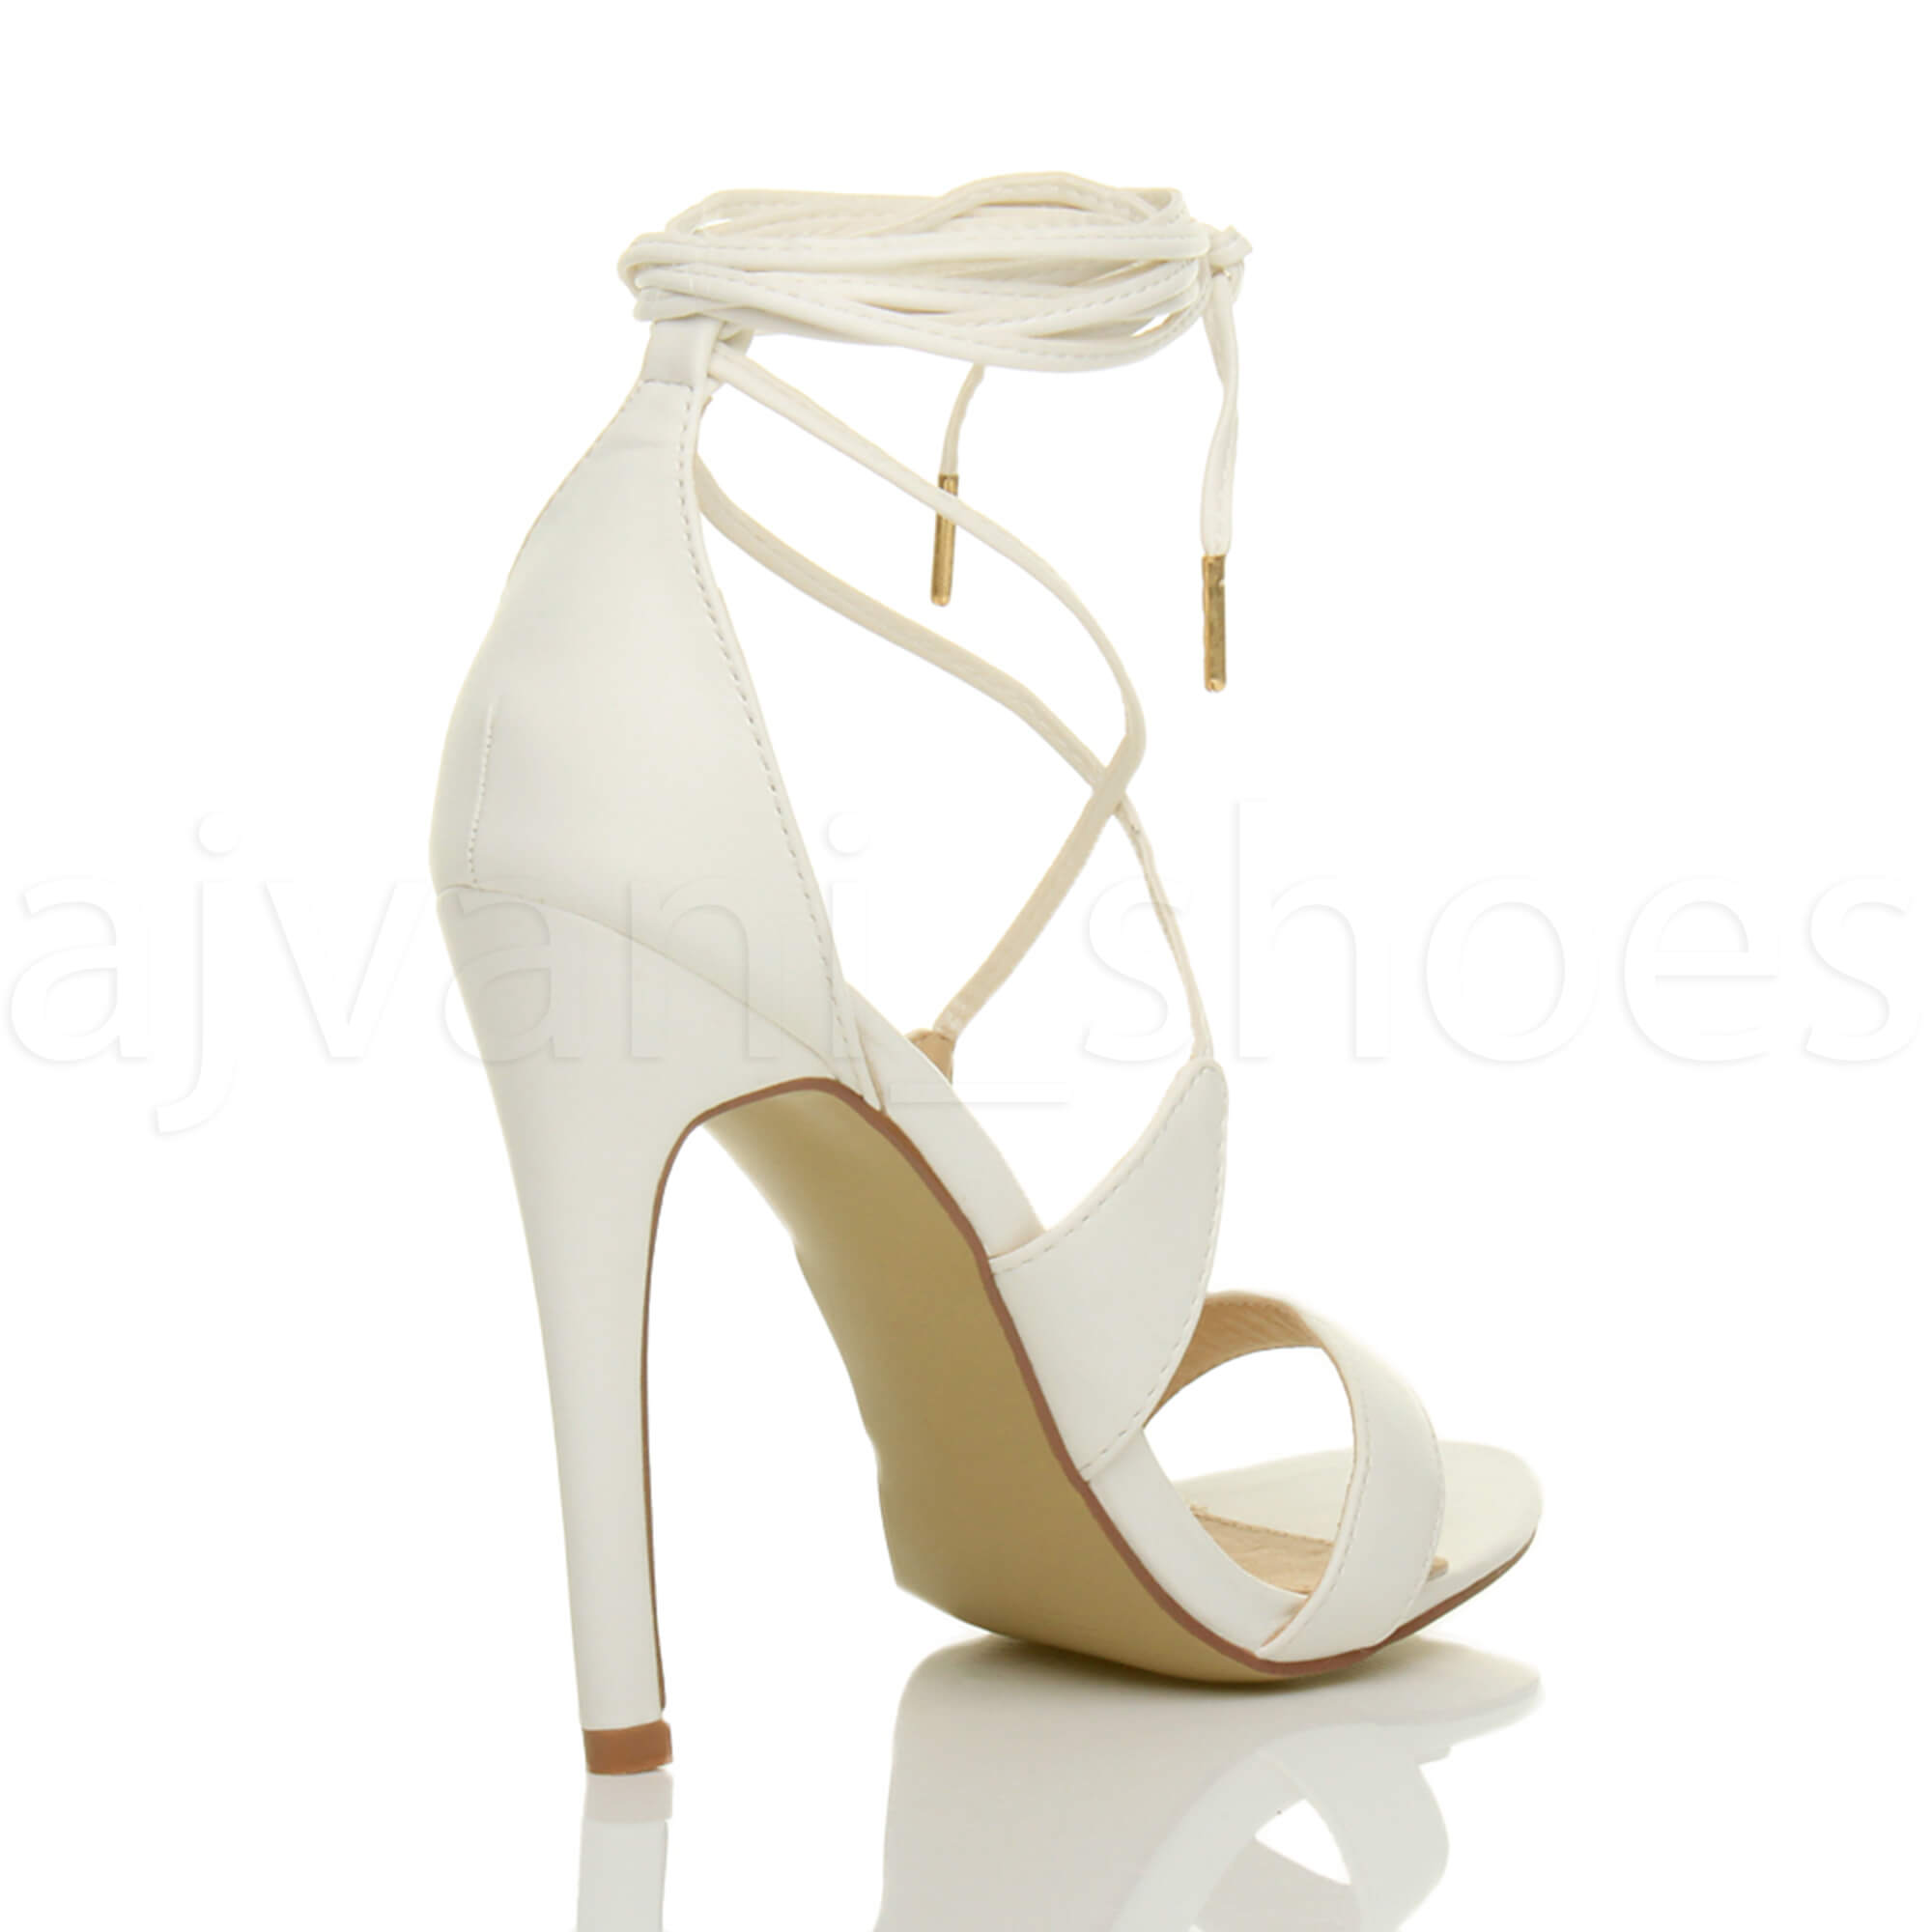 WOMENS-LADIES-HIGH-HEEL-BARELY-THERE-STRAPPY-LACE-TIE-UP-SANDALS-SHOES-SIZE thumbnail 53